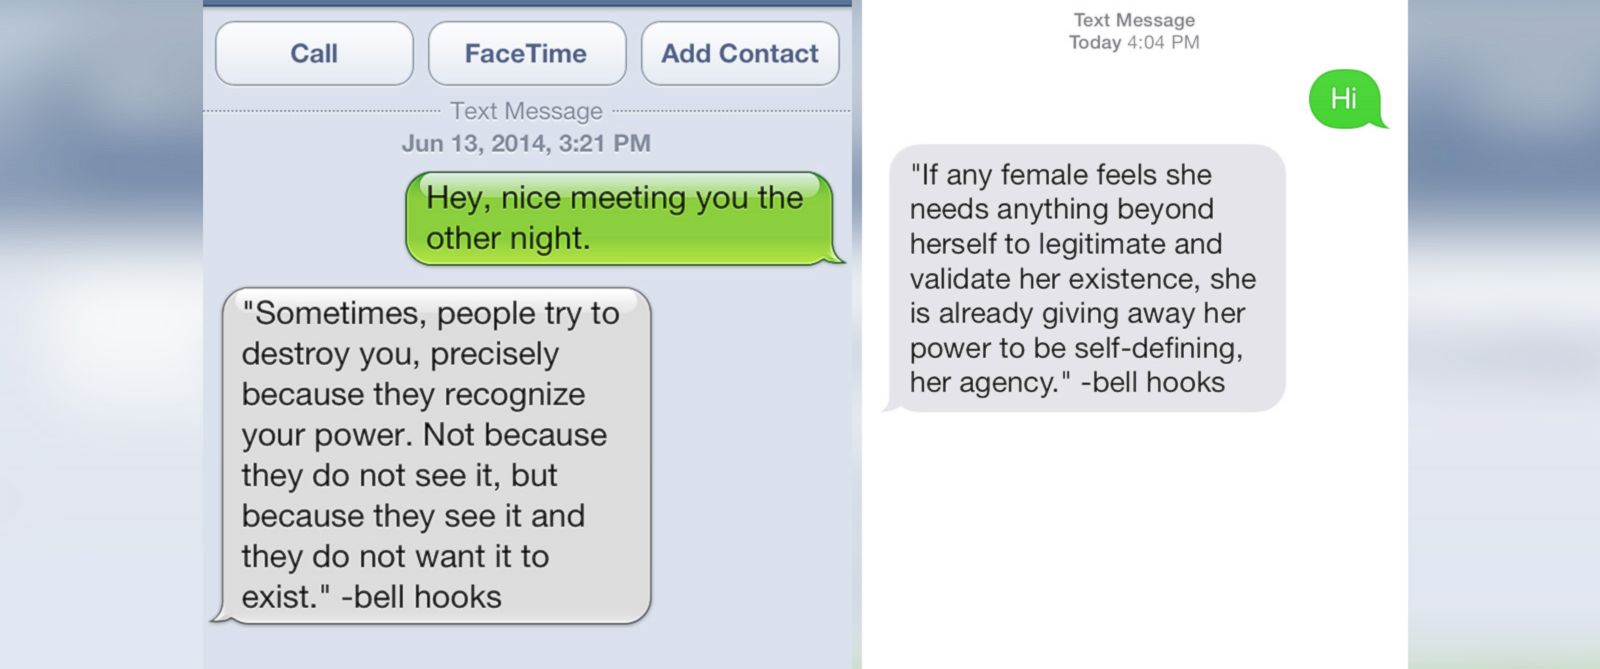 PHOTO: Text messages from the Feminist Phone Intervention line.